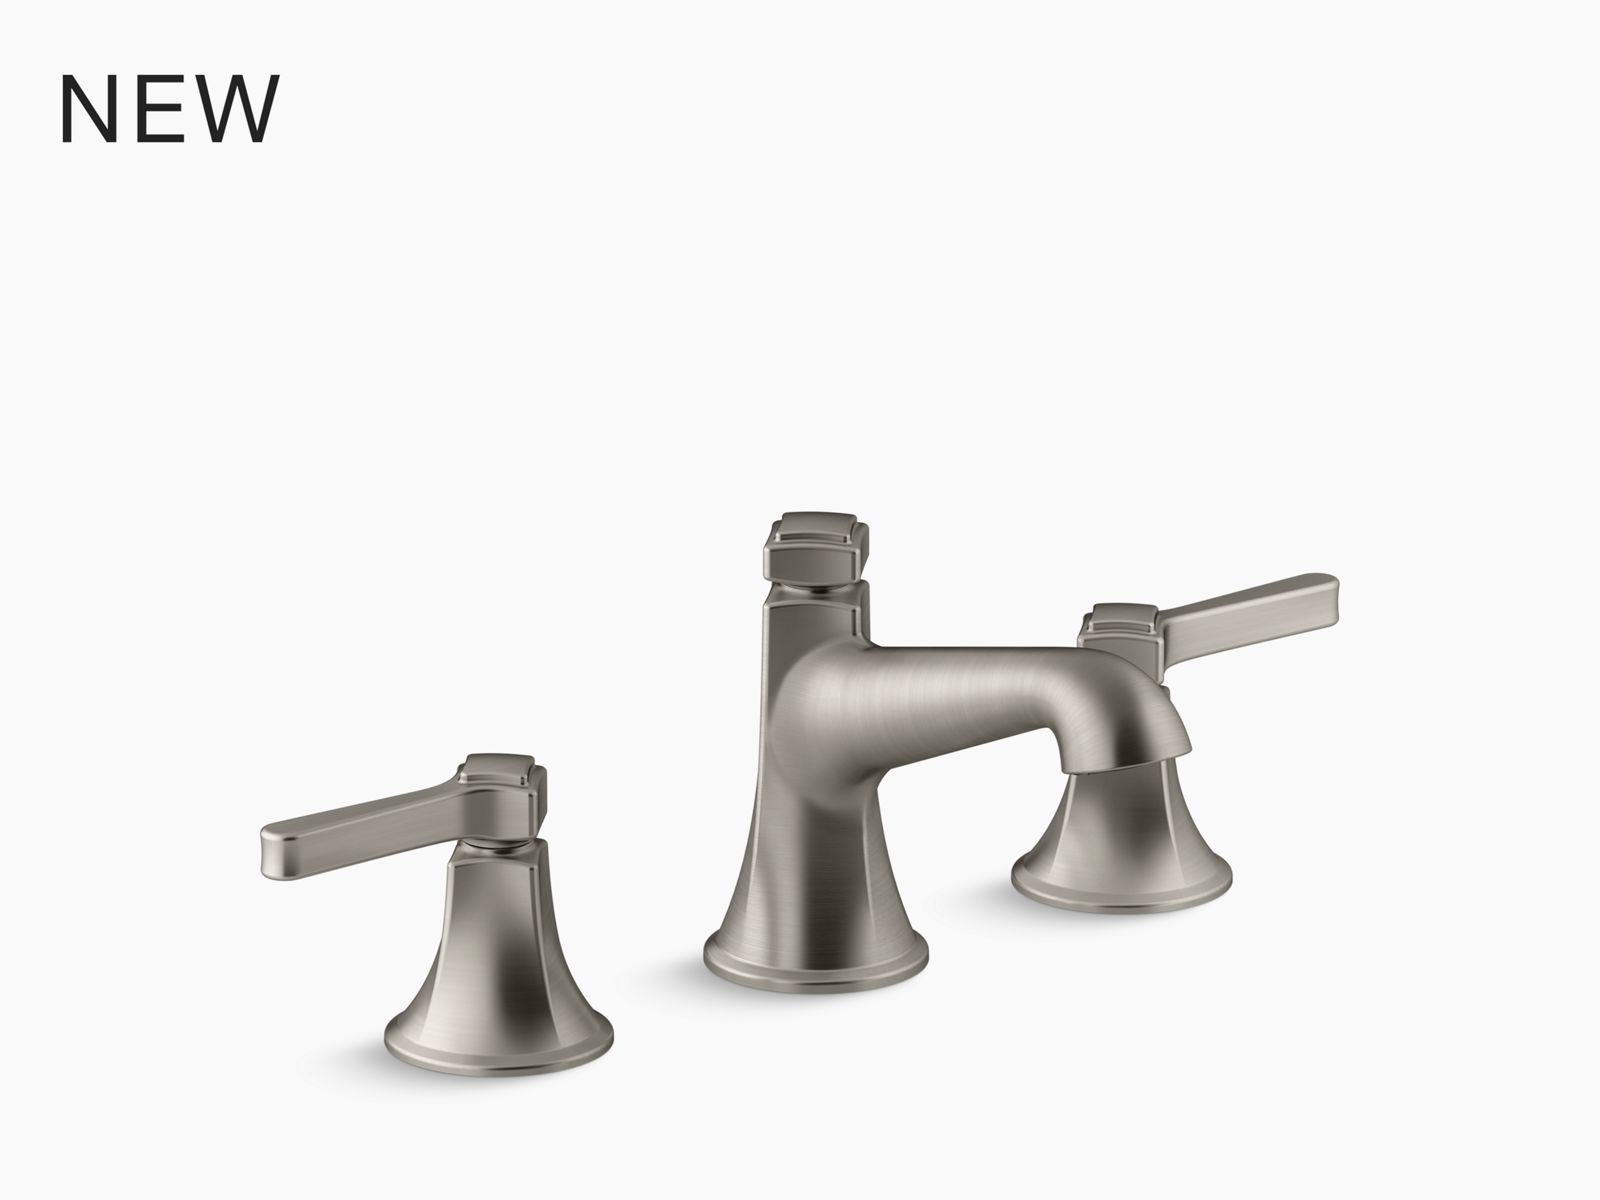 memoirs classic classic 24 pedestal bathroom sink with 8 widespread faucet holes